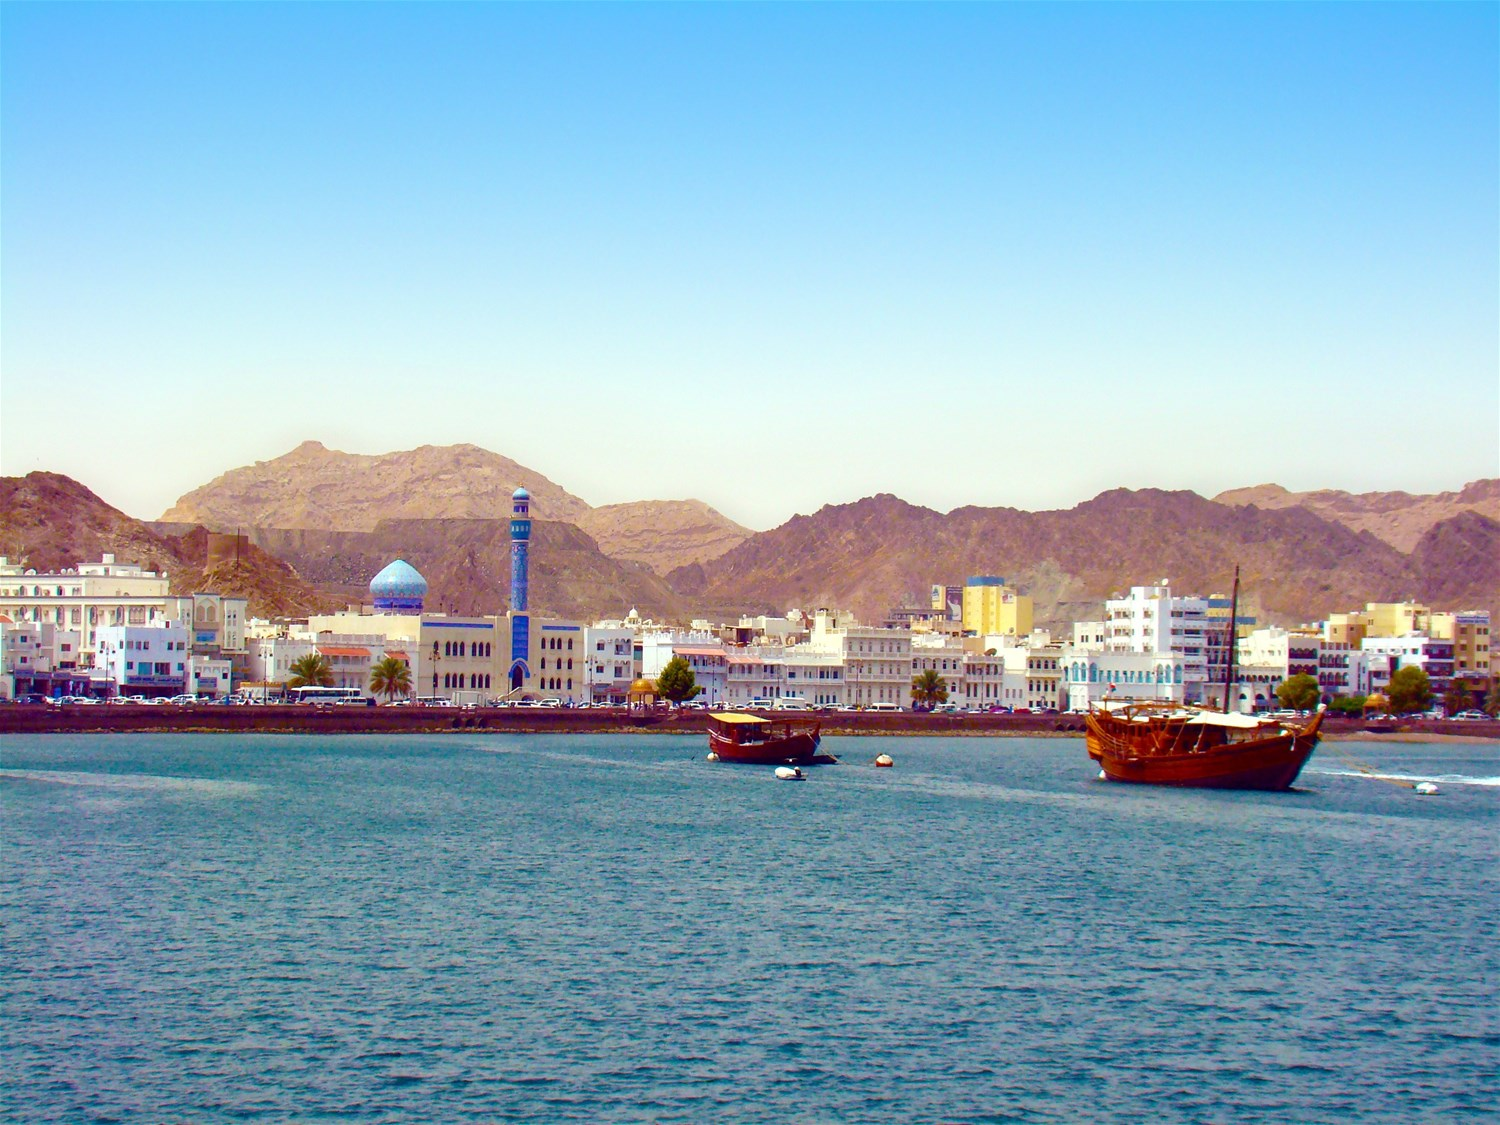 Muscat, Oman - Discover Authentic Arabia